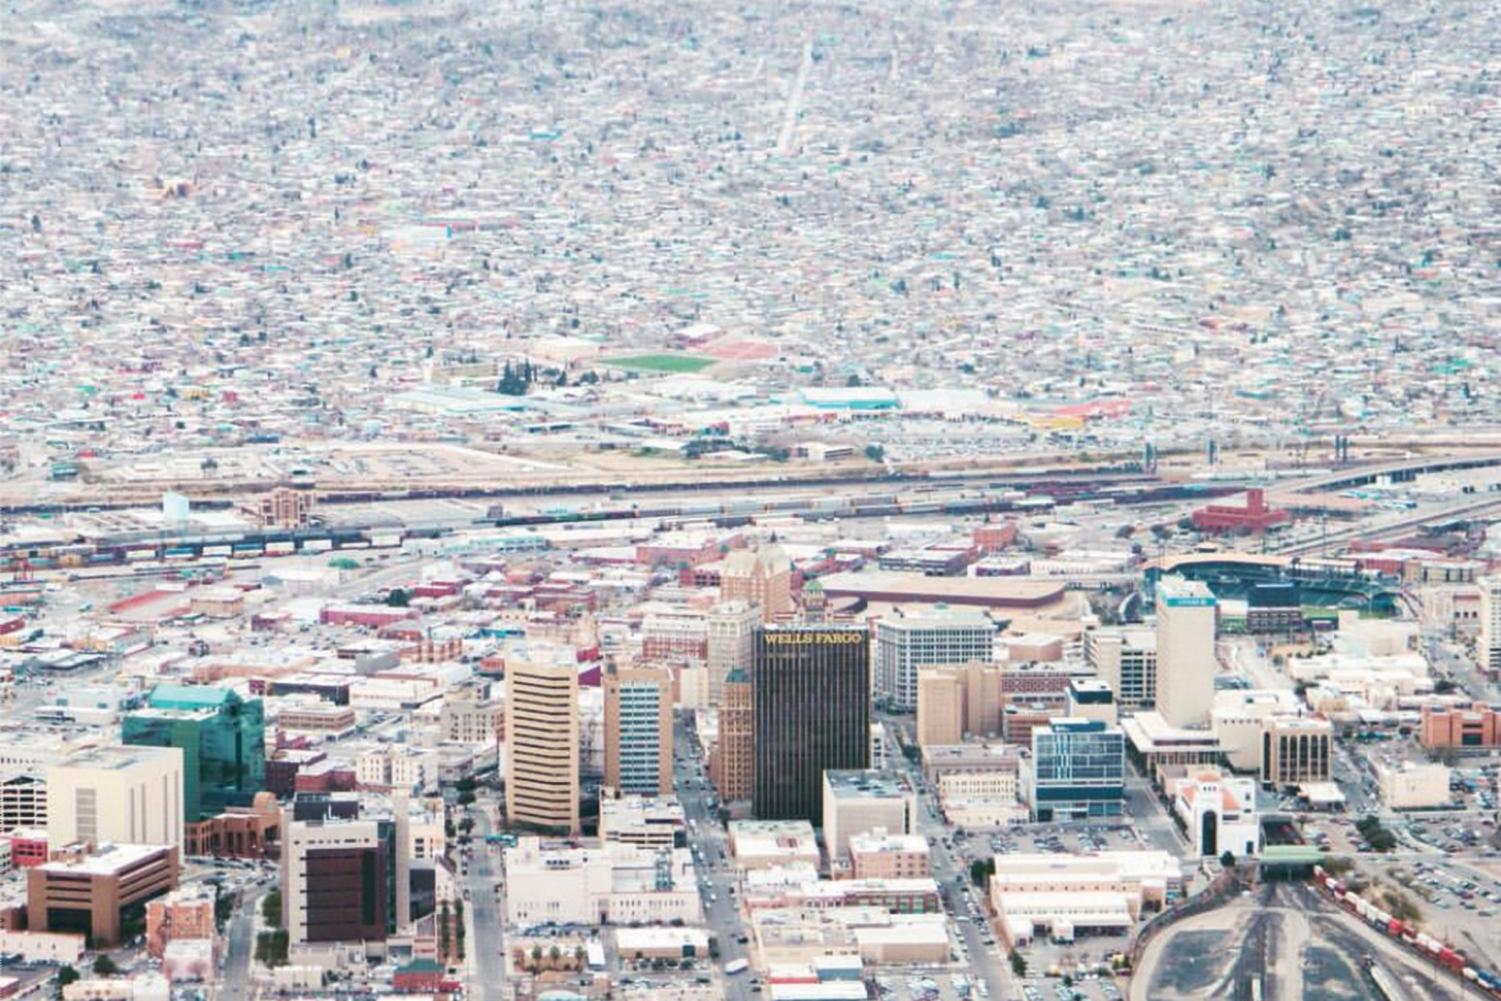 Downtown El Paso as seen from above.